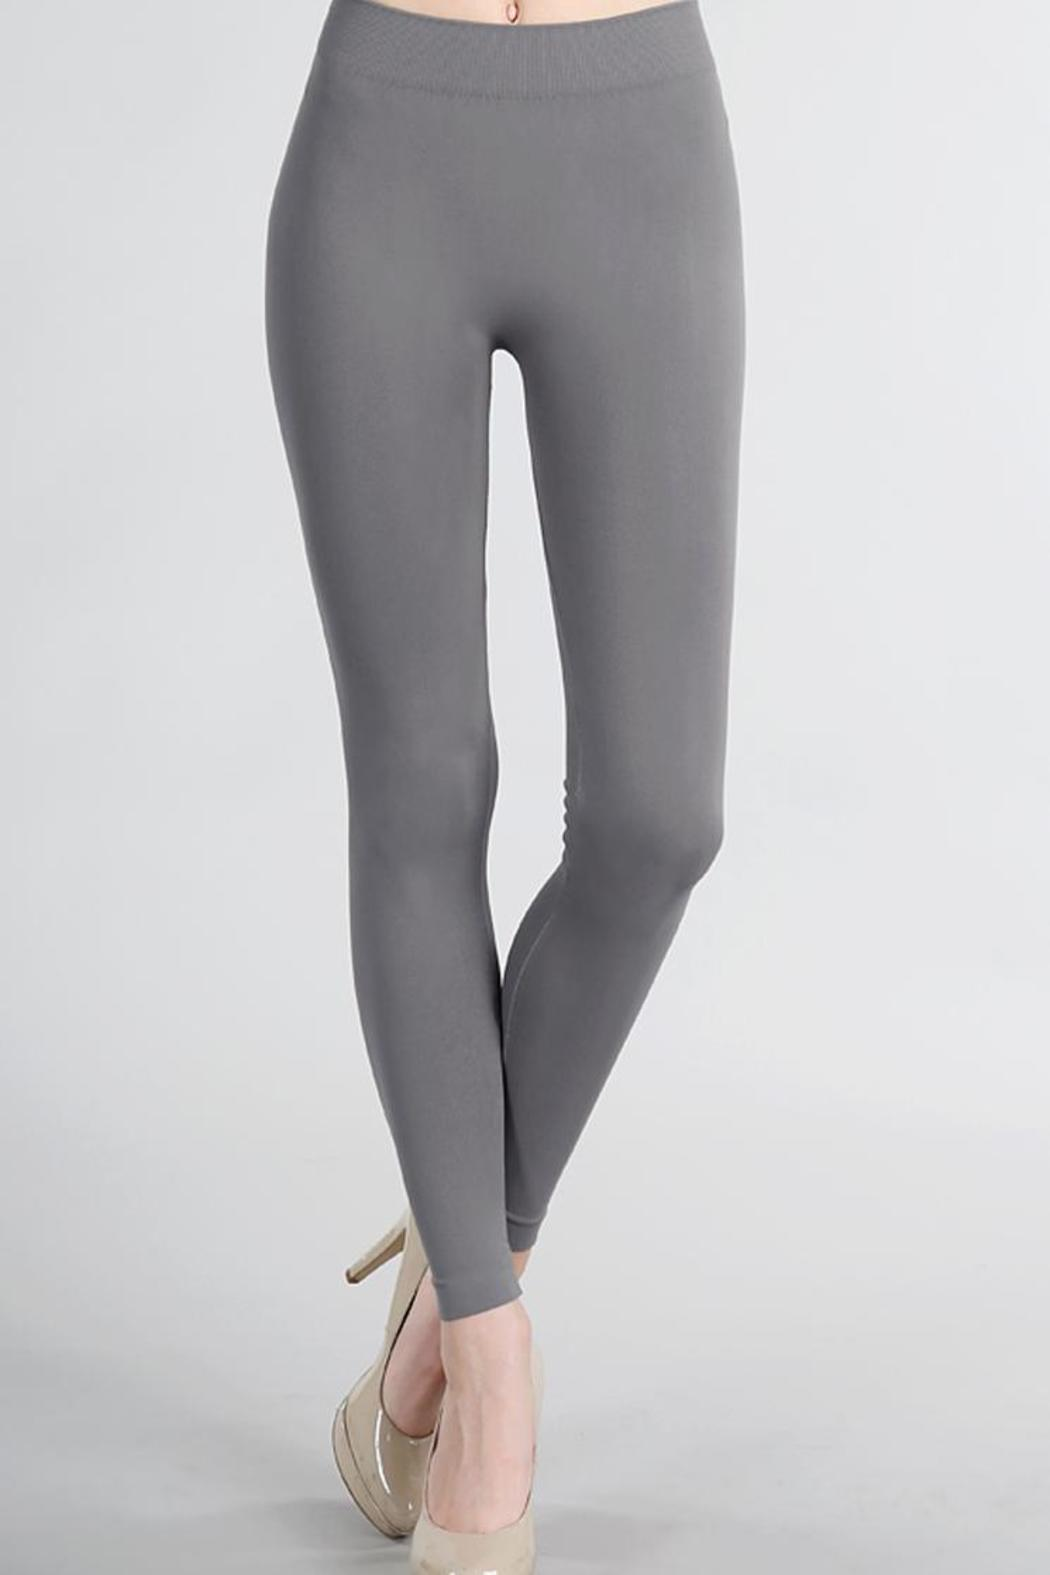 Nikibiki Ankle Length Leggings from Oregon by Patina Soul ...